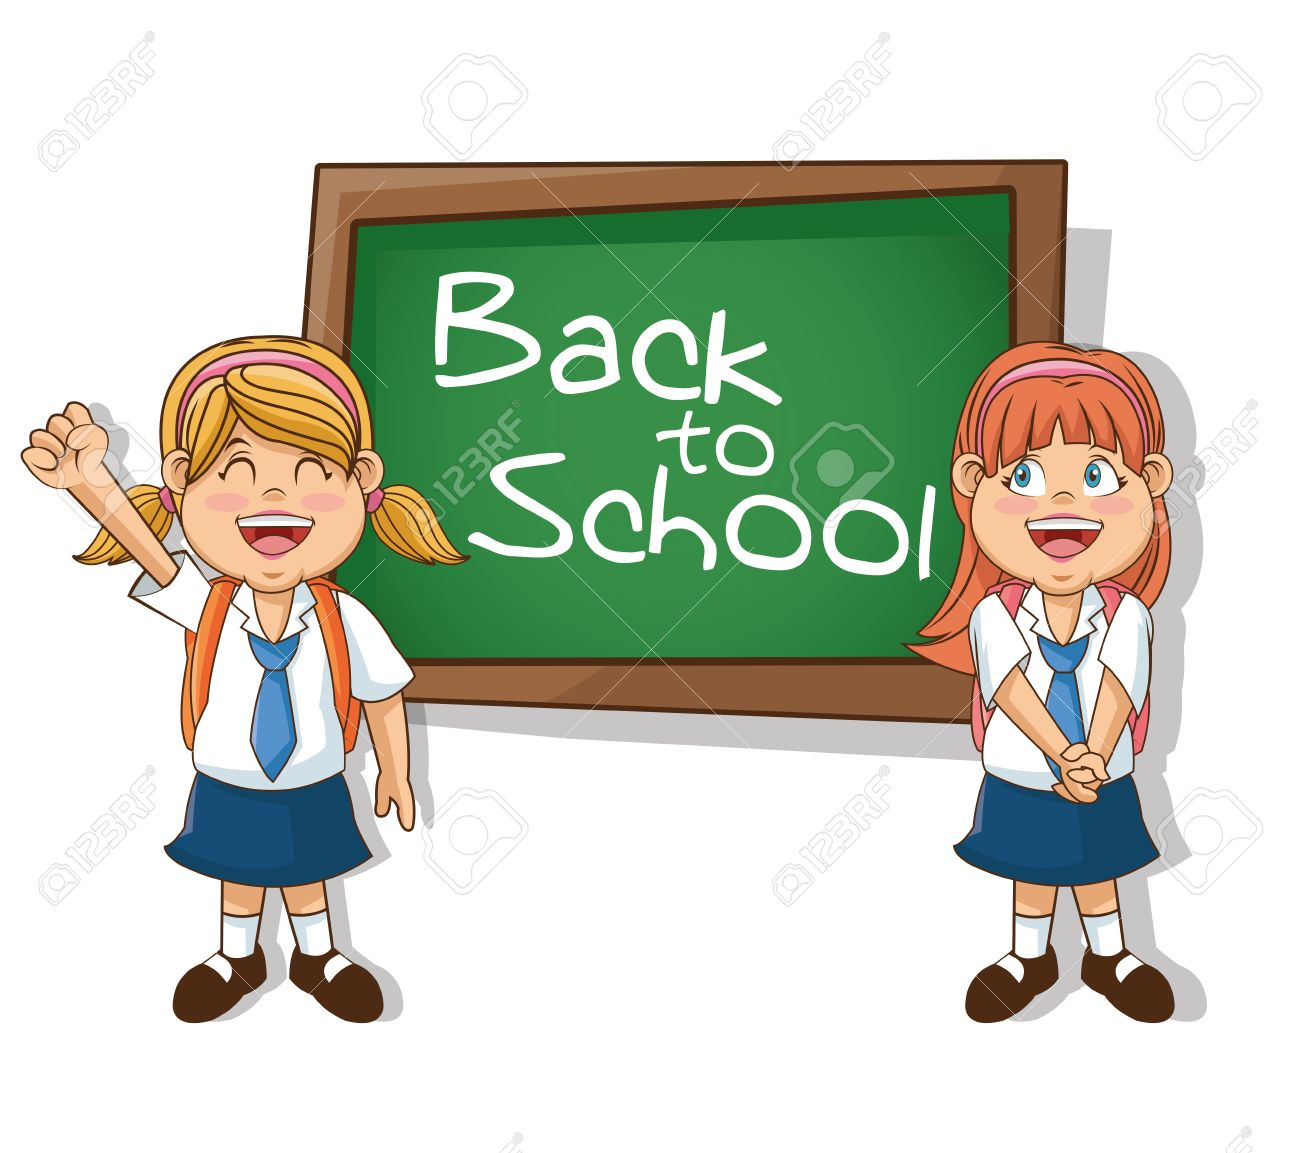 Girls Cartoons Students With Blackboard Back To School Education Royalty Free Cliparts Vectors And Stock Illustration Image 63236547